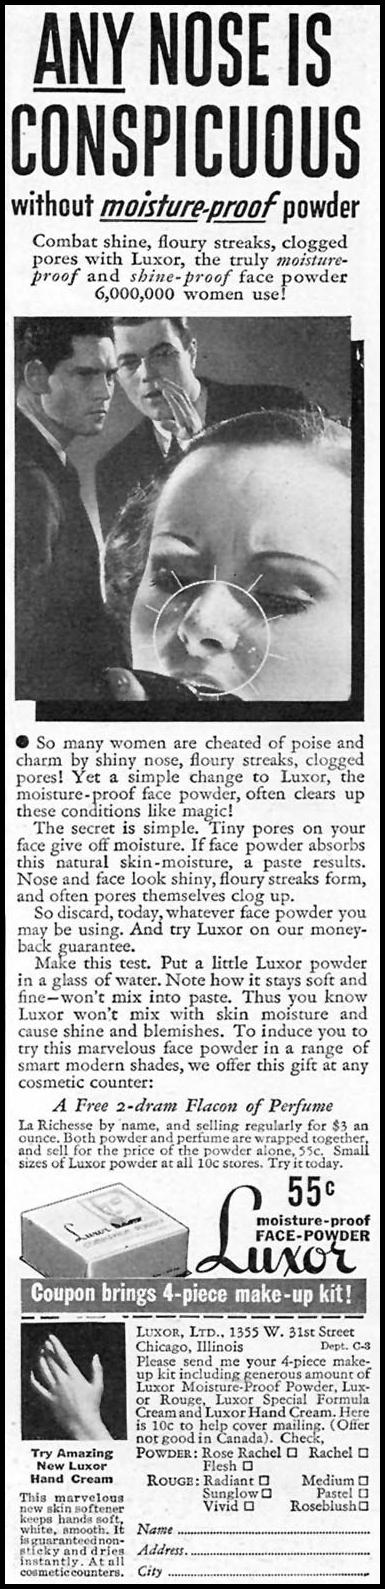 LUXOR MOISTURE-PROOF POWDER GOOD HOUSEKEEPING 04/01/1936 p. 221